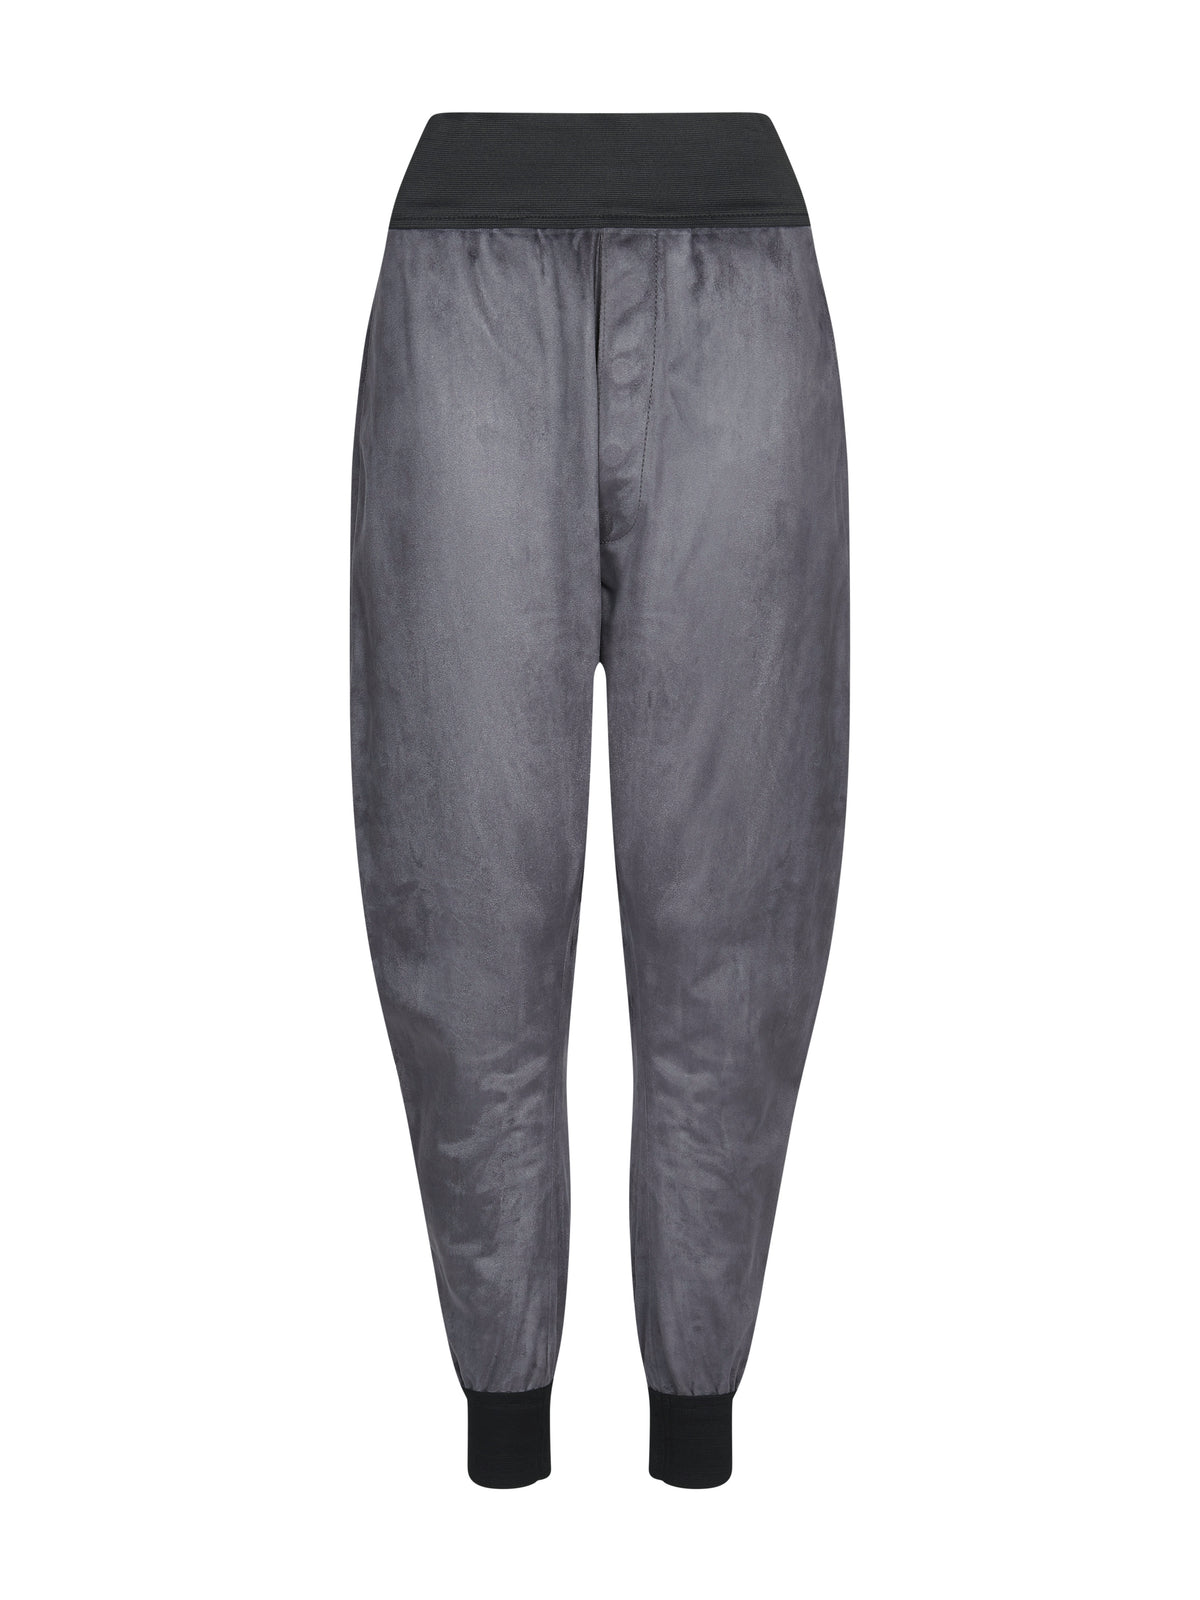 FENDER TRACK PANTS GREY